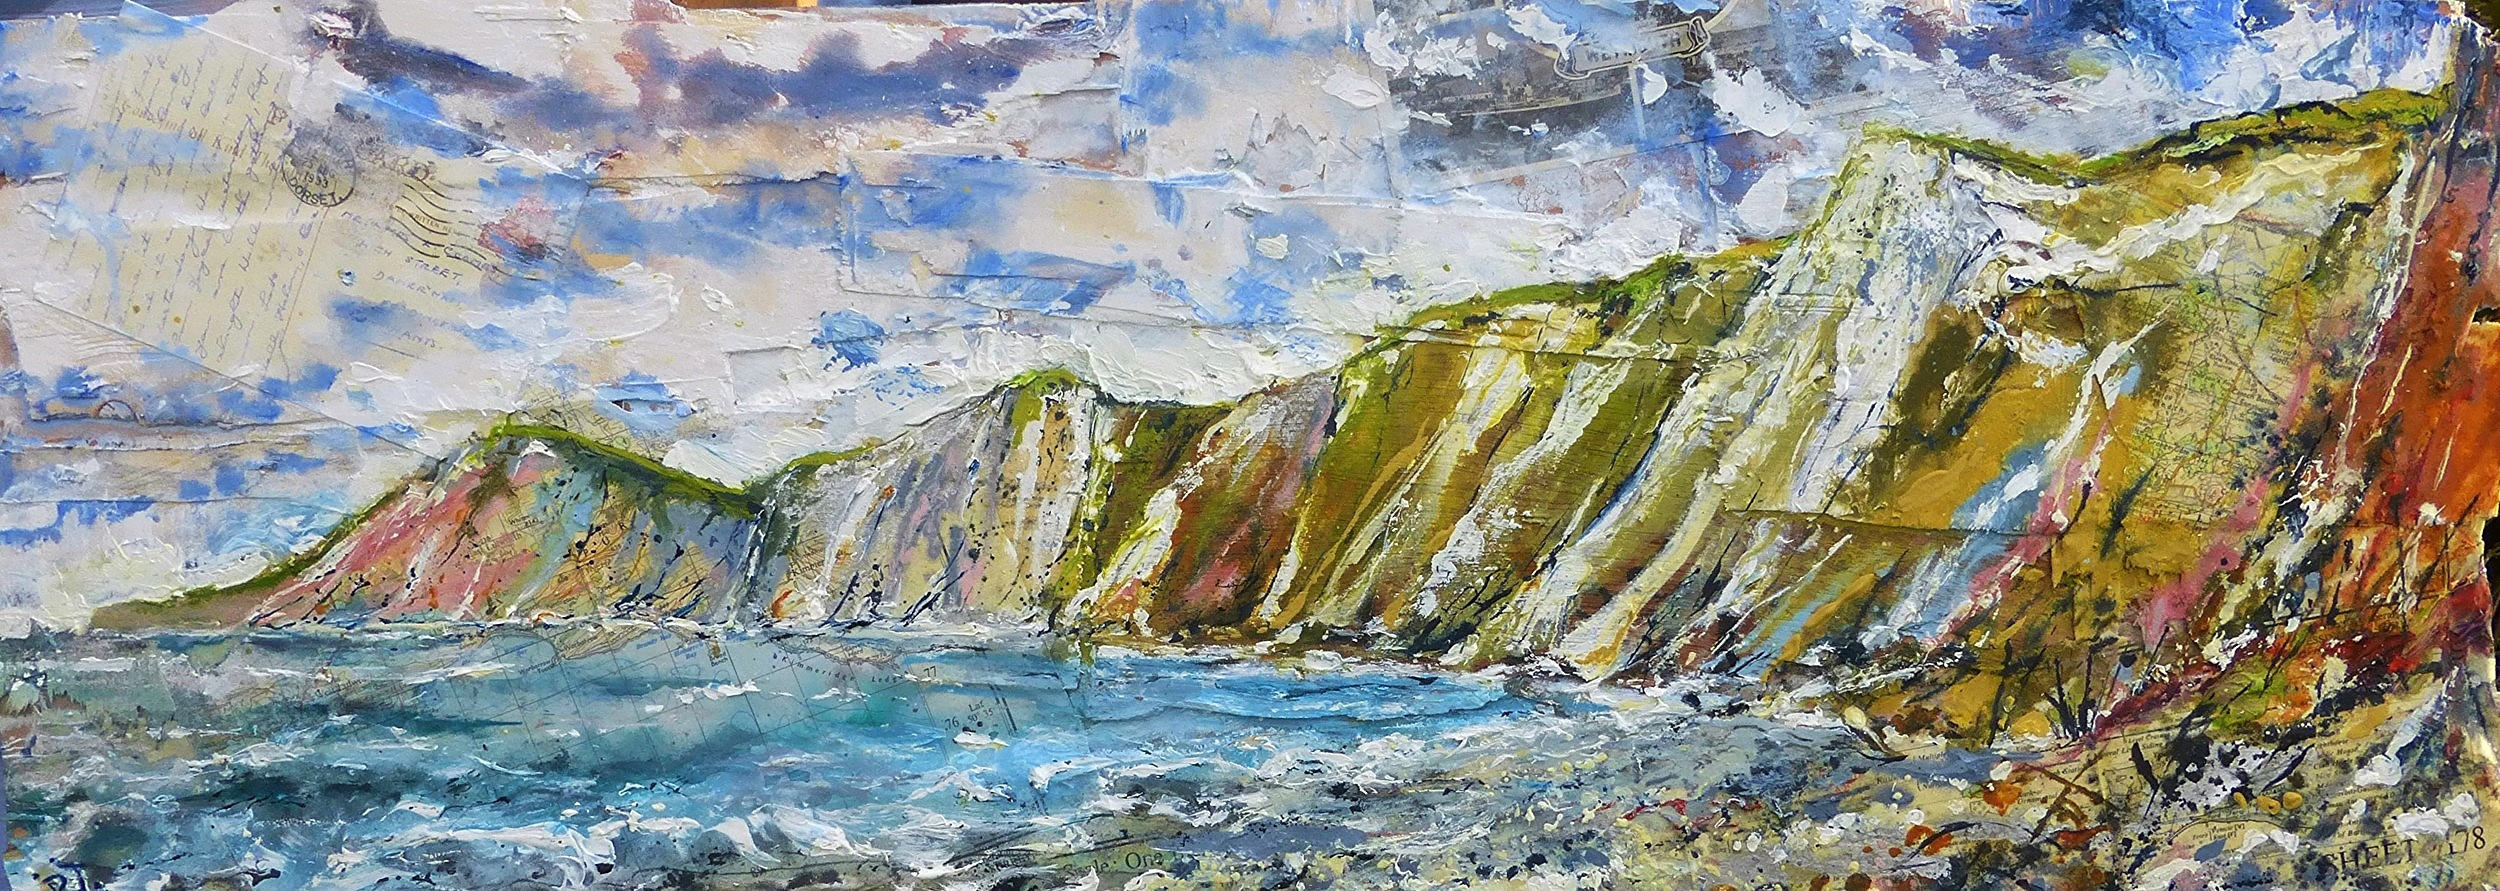 Worbarrow Bay, Purbeck Coast, Dorset. Oil, acrylic and collage on wood.